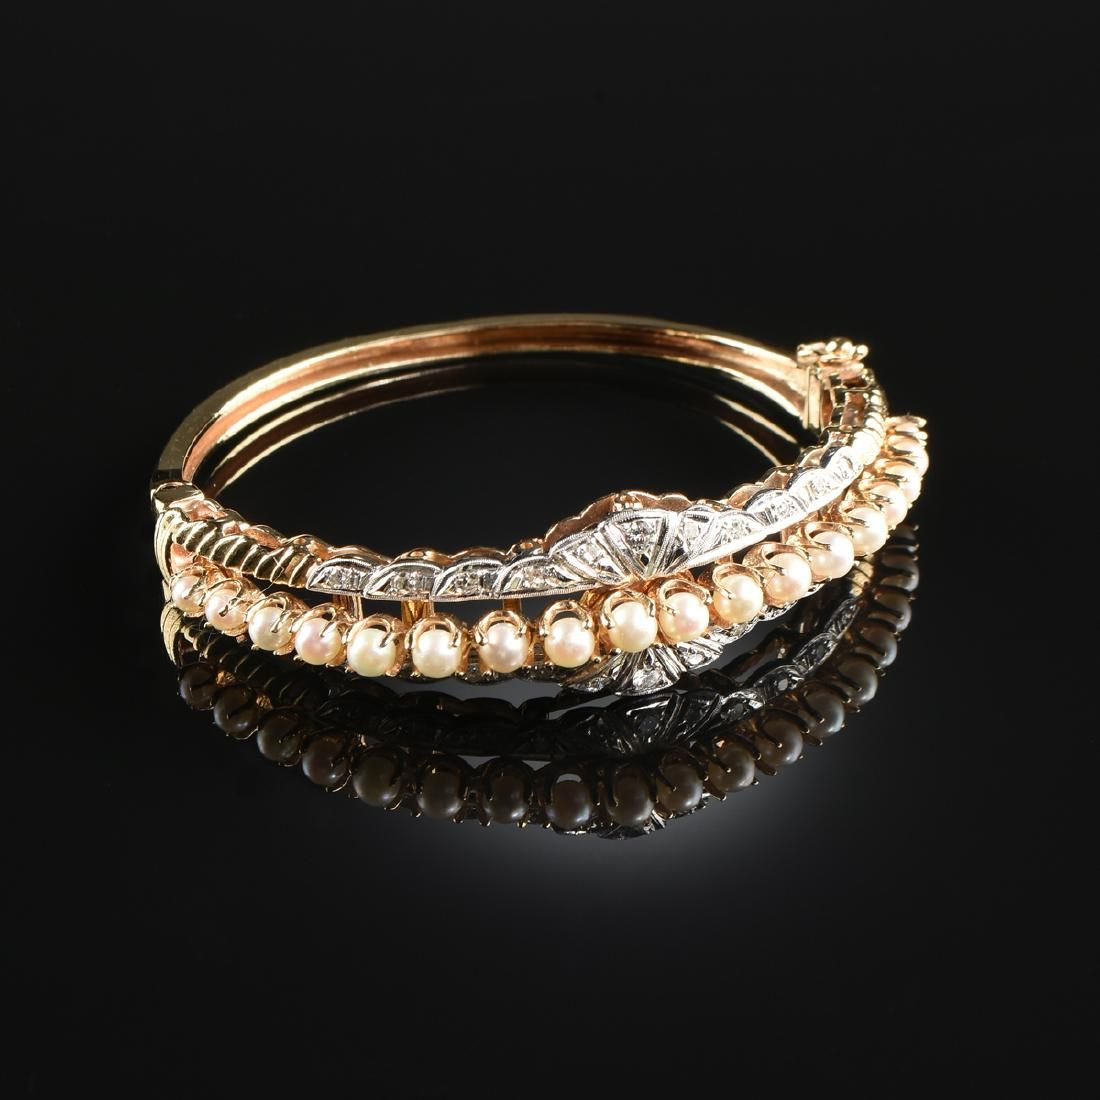 A 14K TWO TONE GOLD, PEARL, AND DIAMOND LADY'S